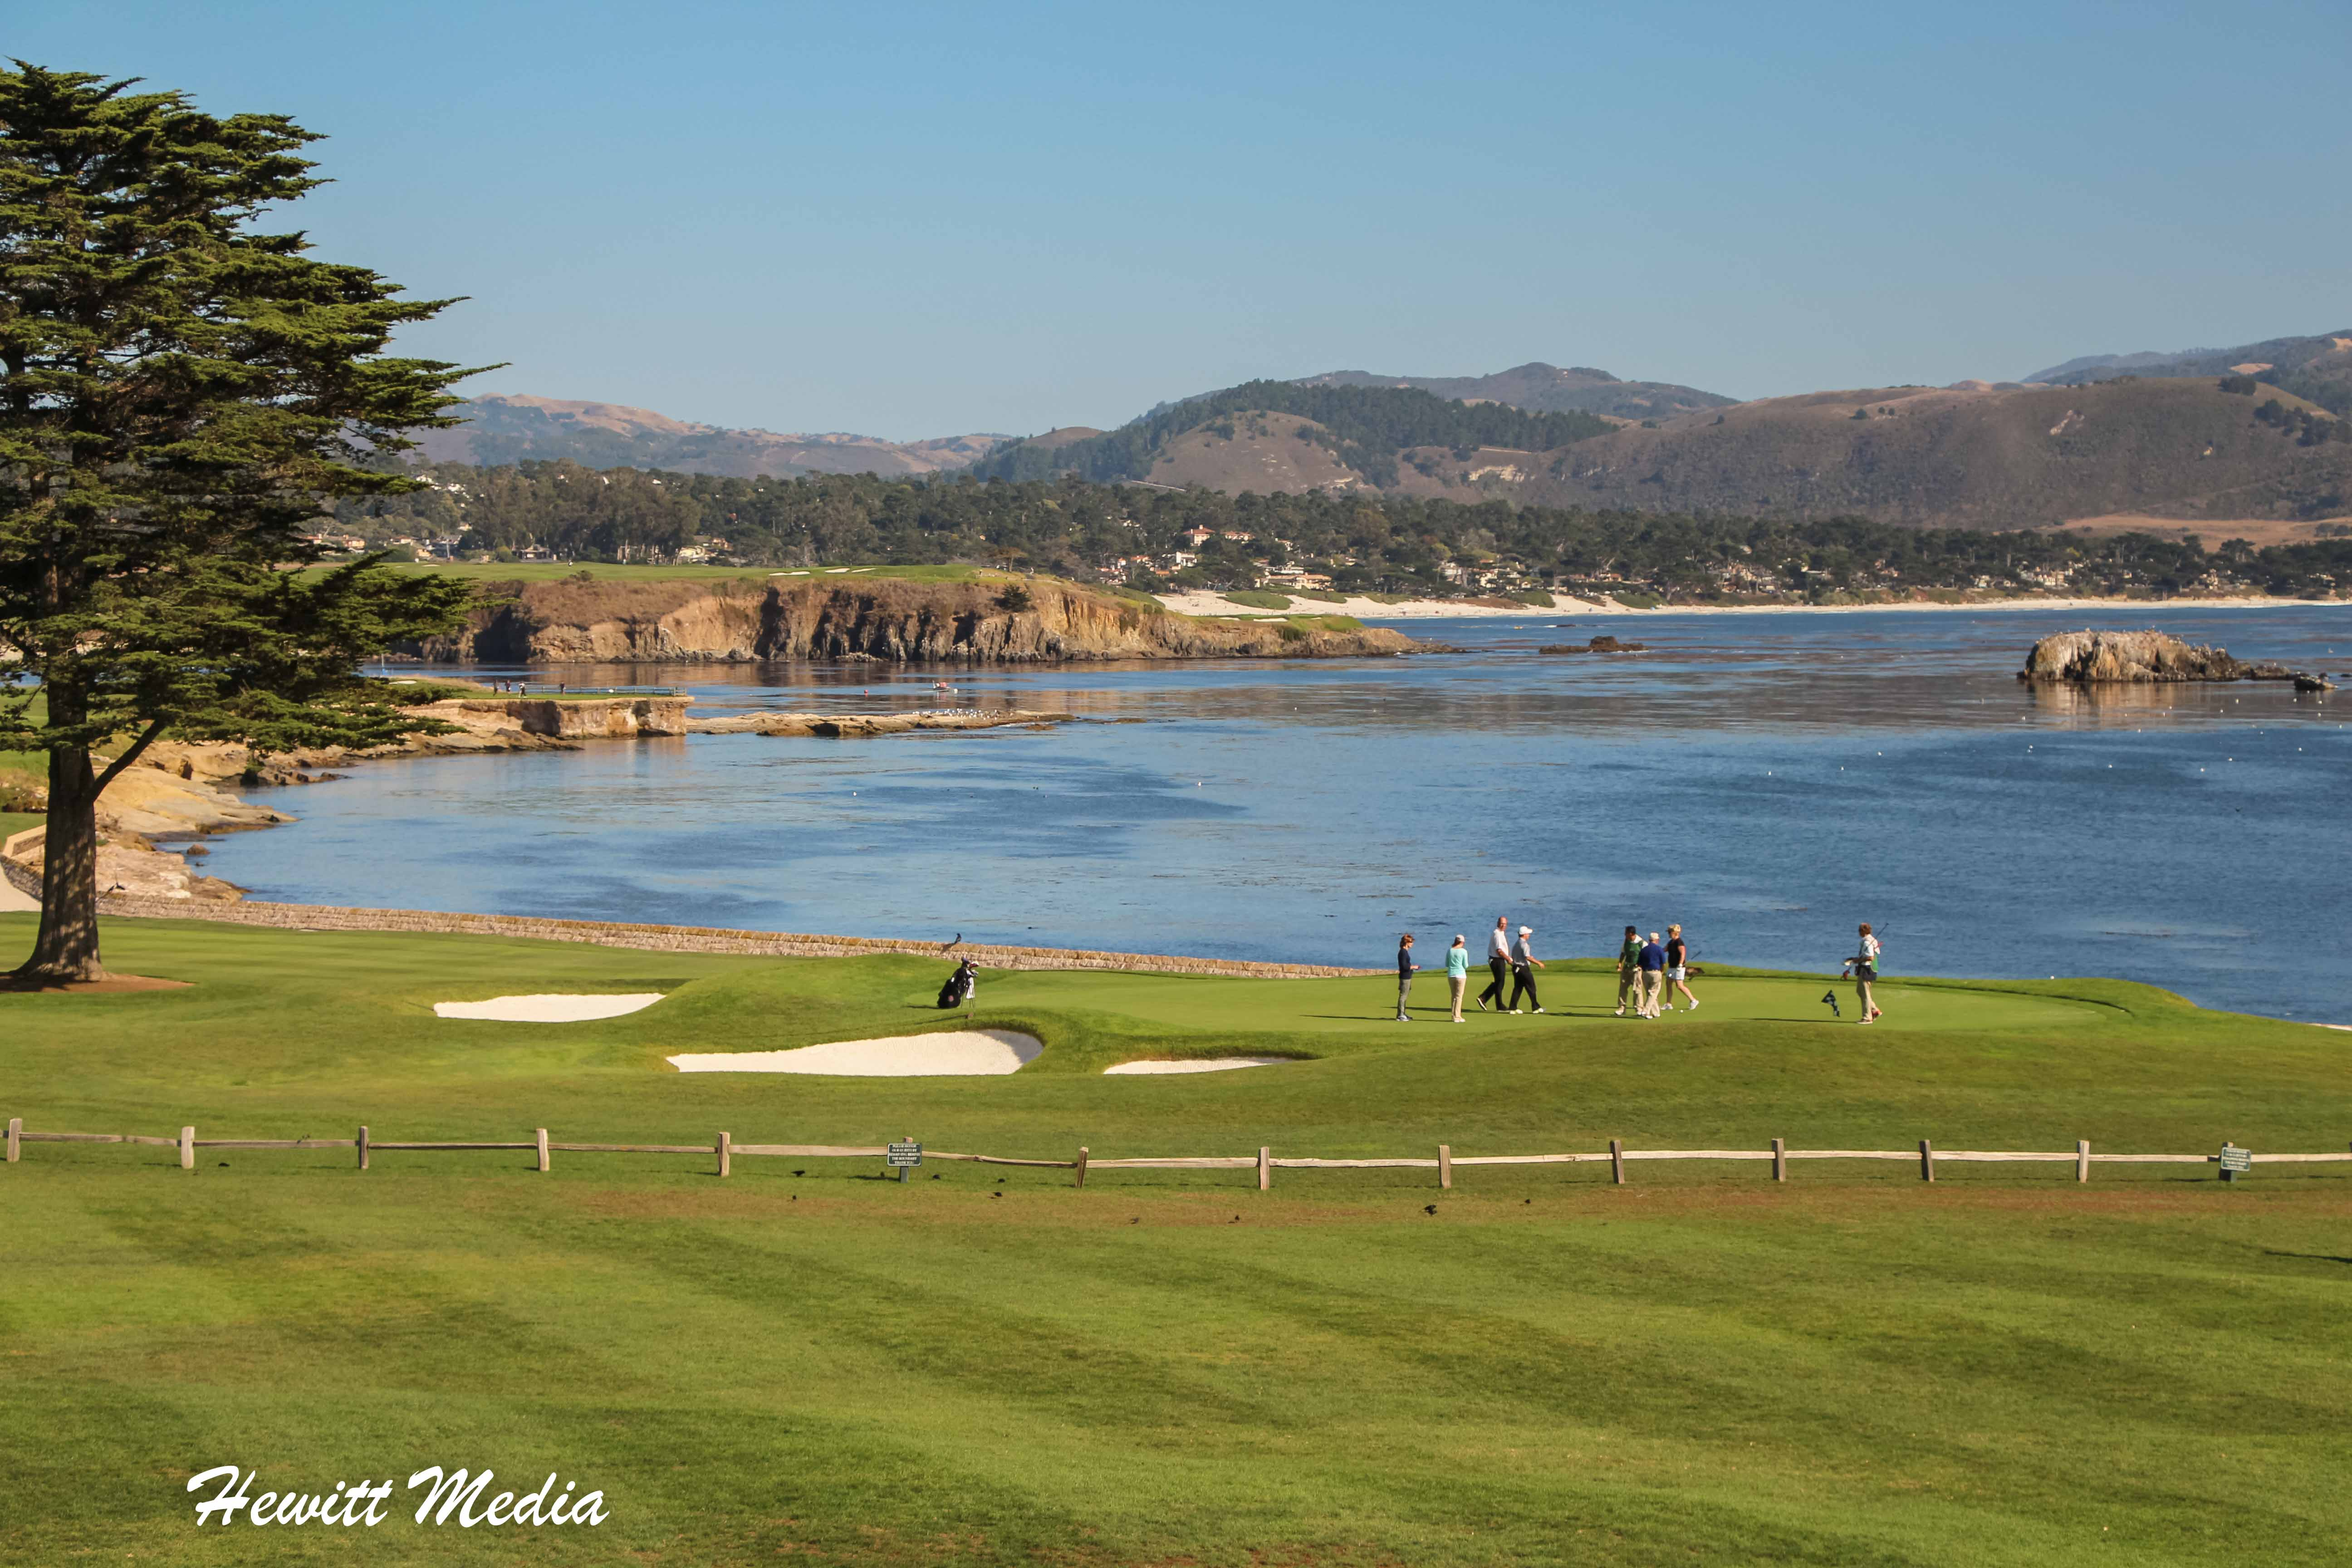 18th Hole at Pebble Beach